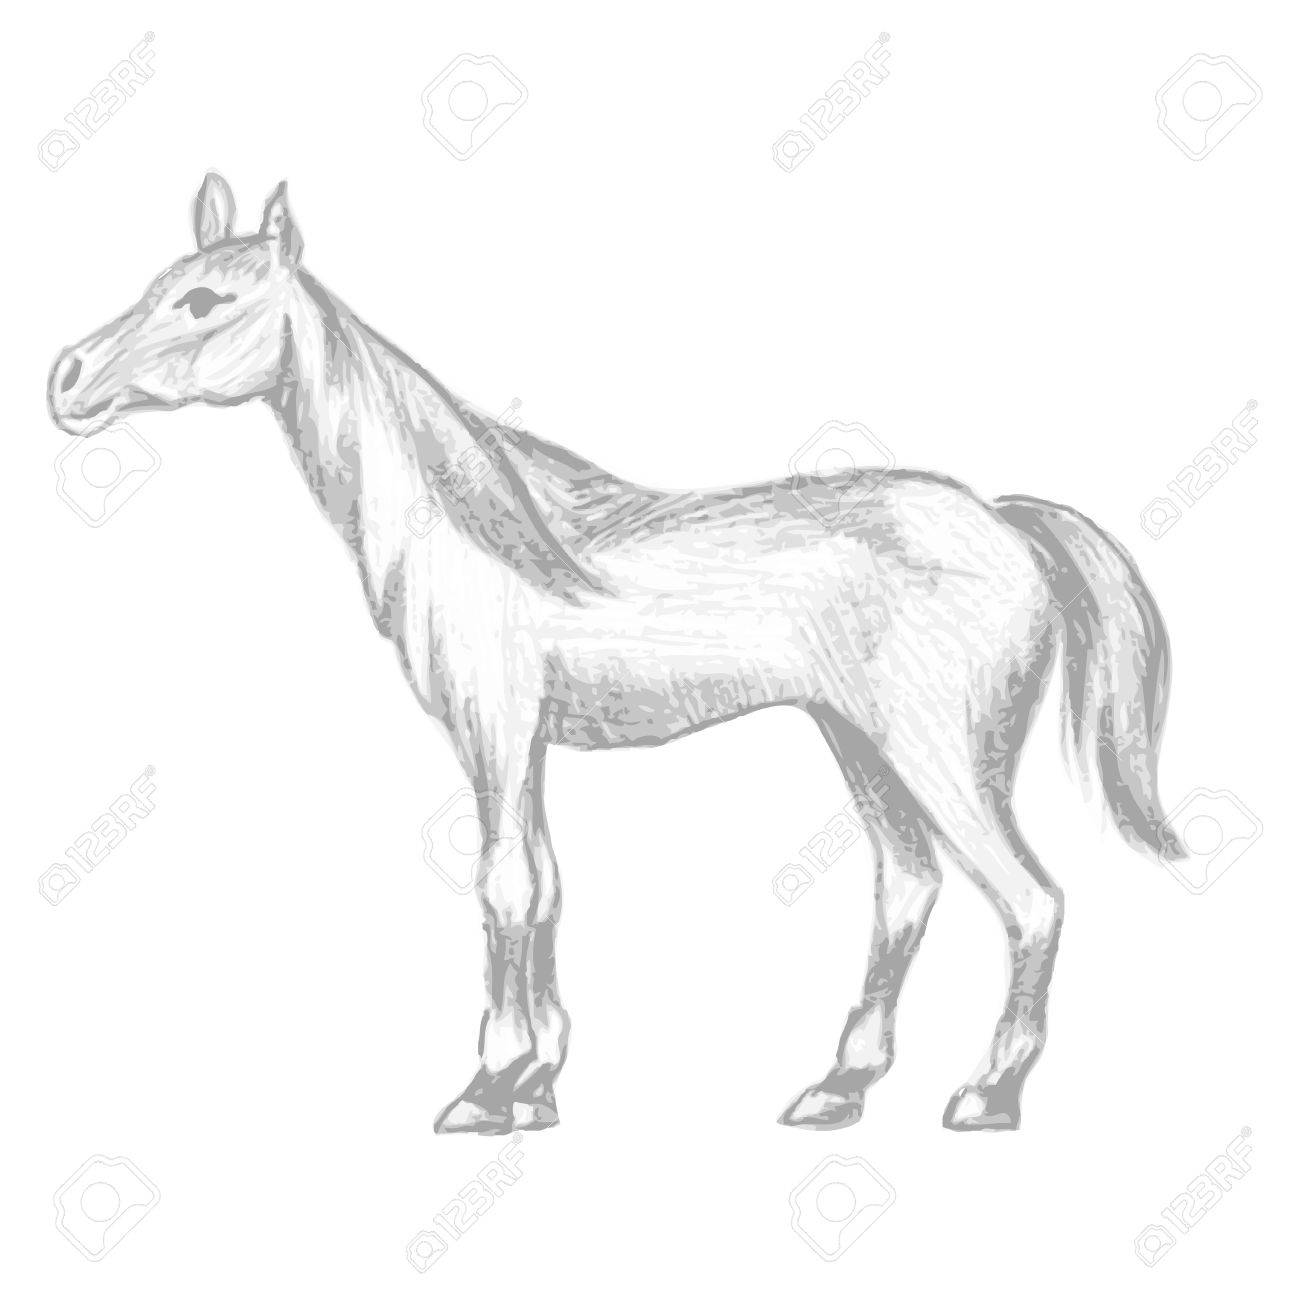 1300x1300 Hand Drawn Horse, Pencil Drawing Of Mare With Long Mane And Tail